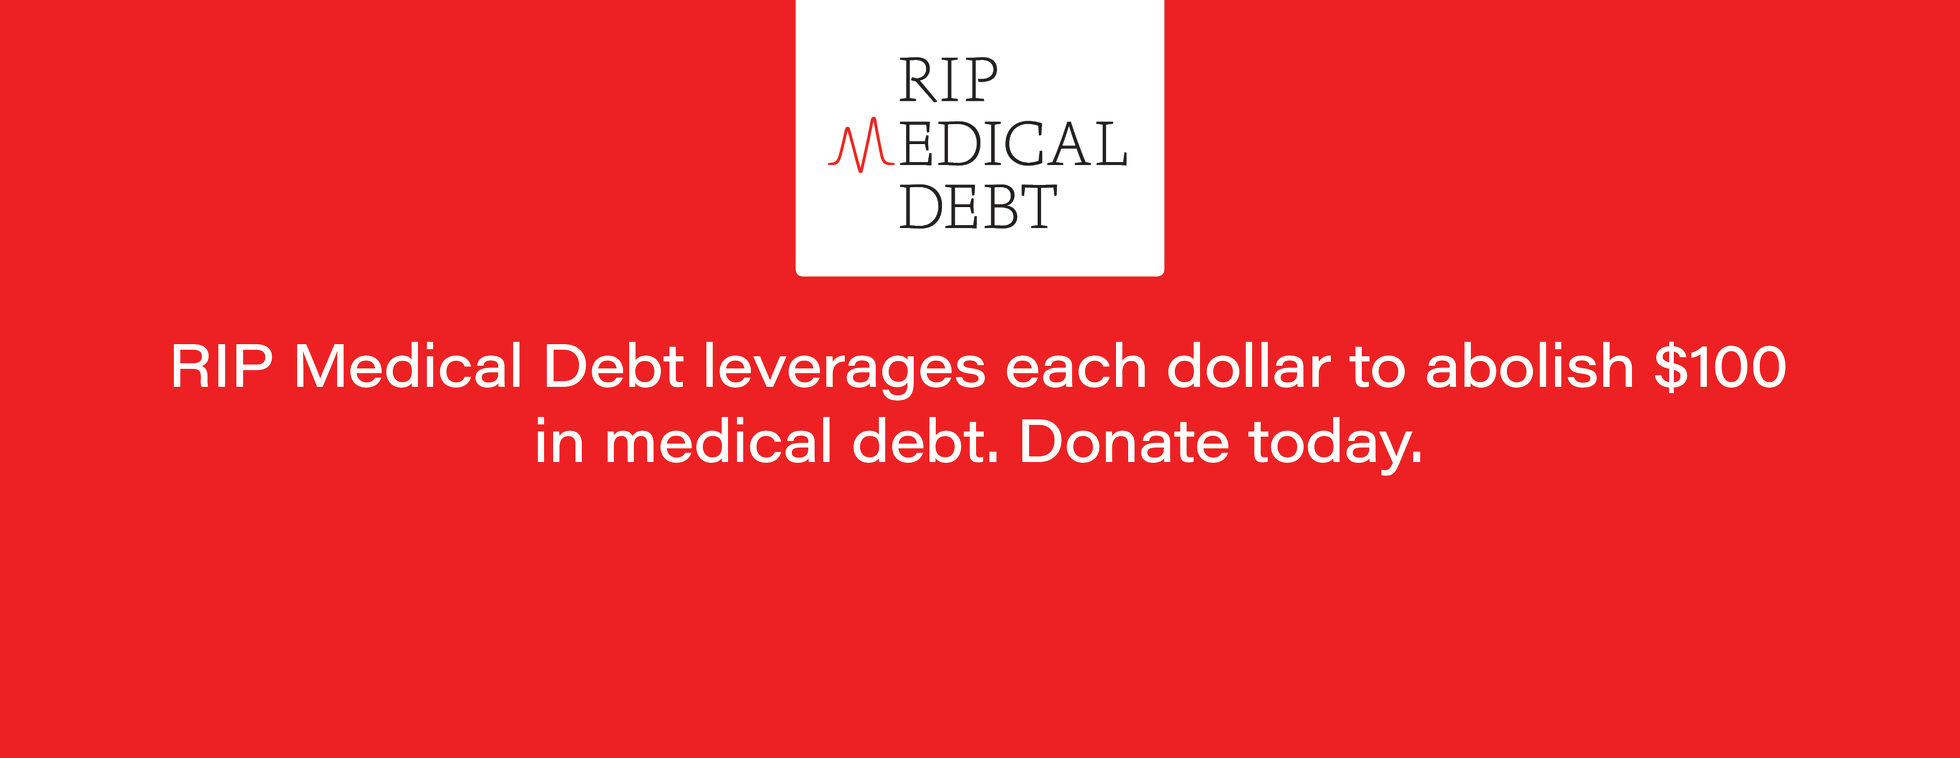 Gold Direct Care's Campaign against MA Medical Debt